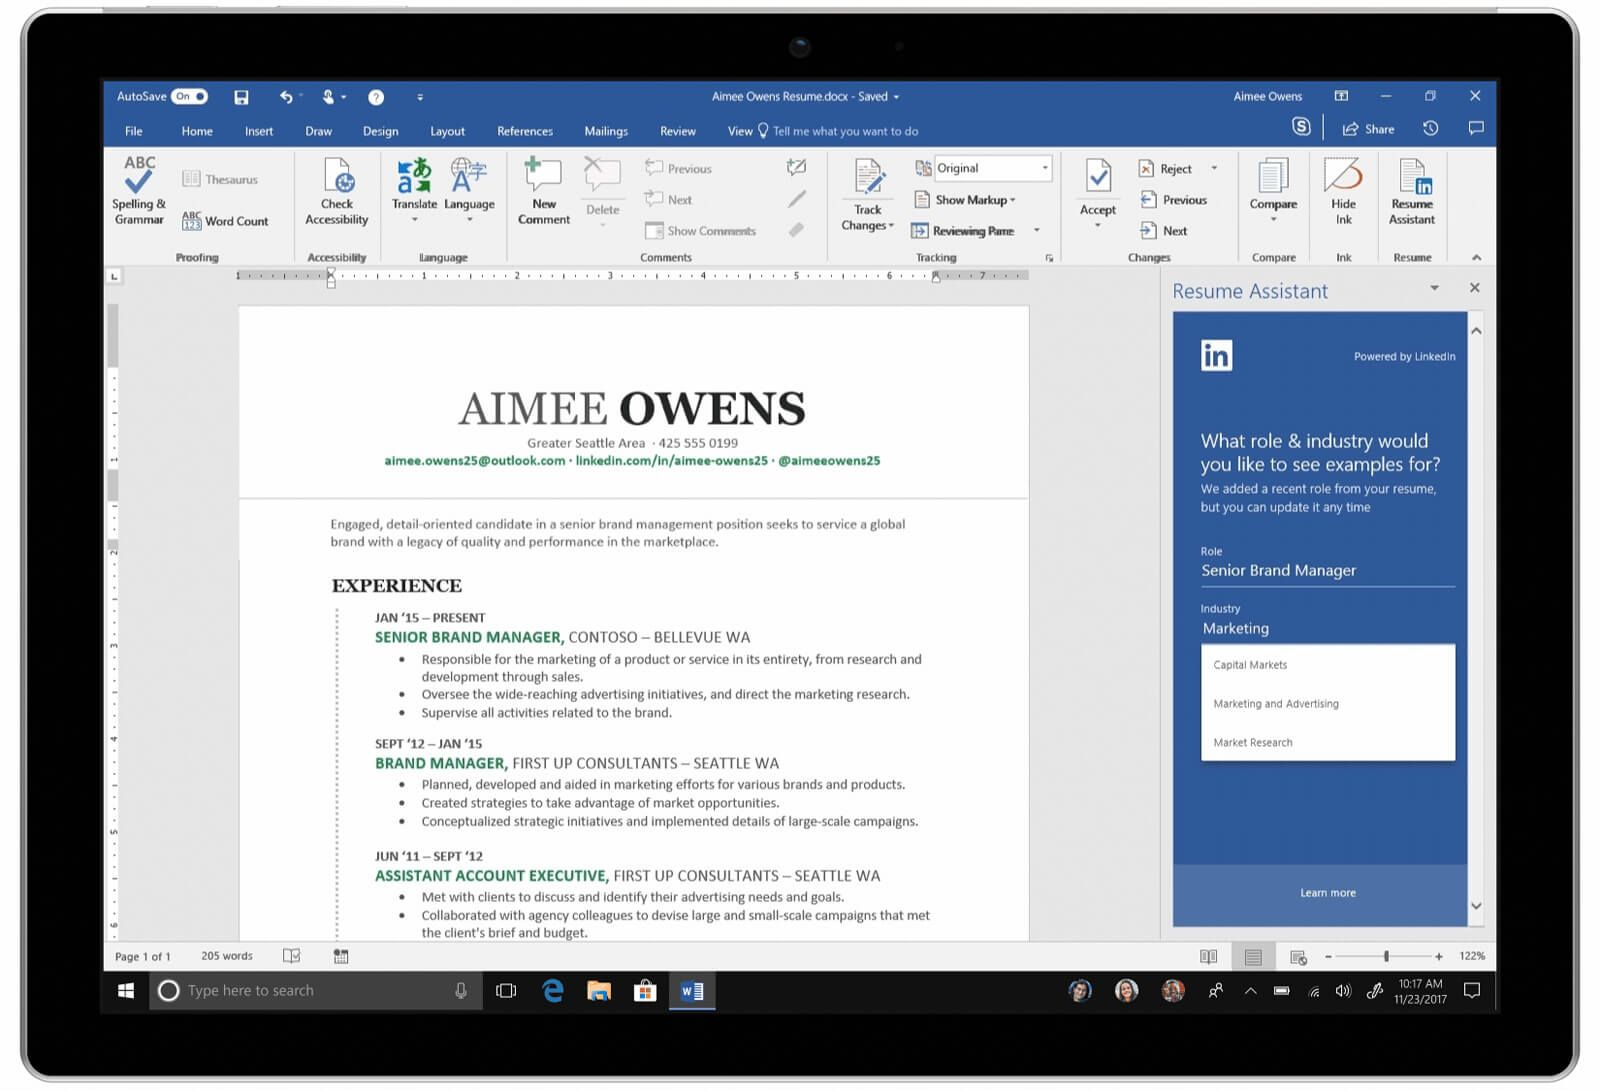 Microsoft releases LinkedIn Resume Assistant AI for Word